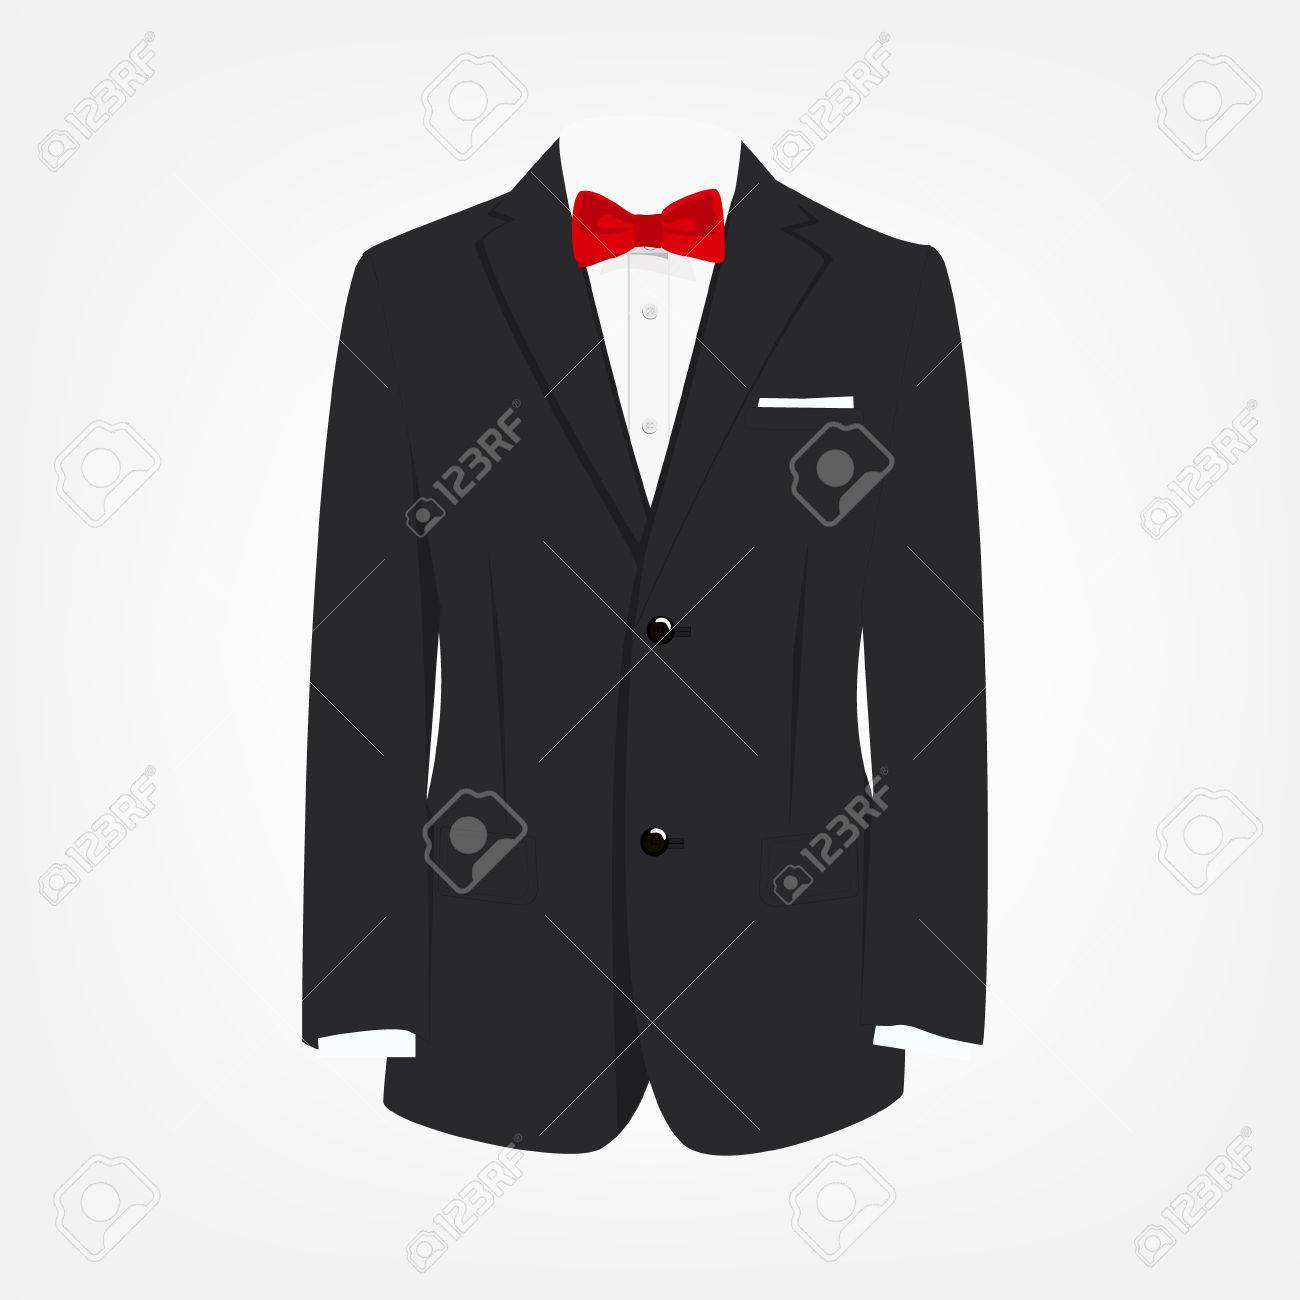 569473c6a99a Vector illustration elegant, modern businessman black suit with red bow tie.  Suit icon Stock